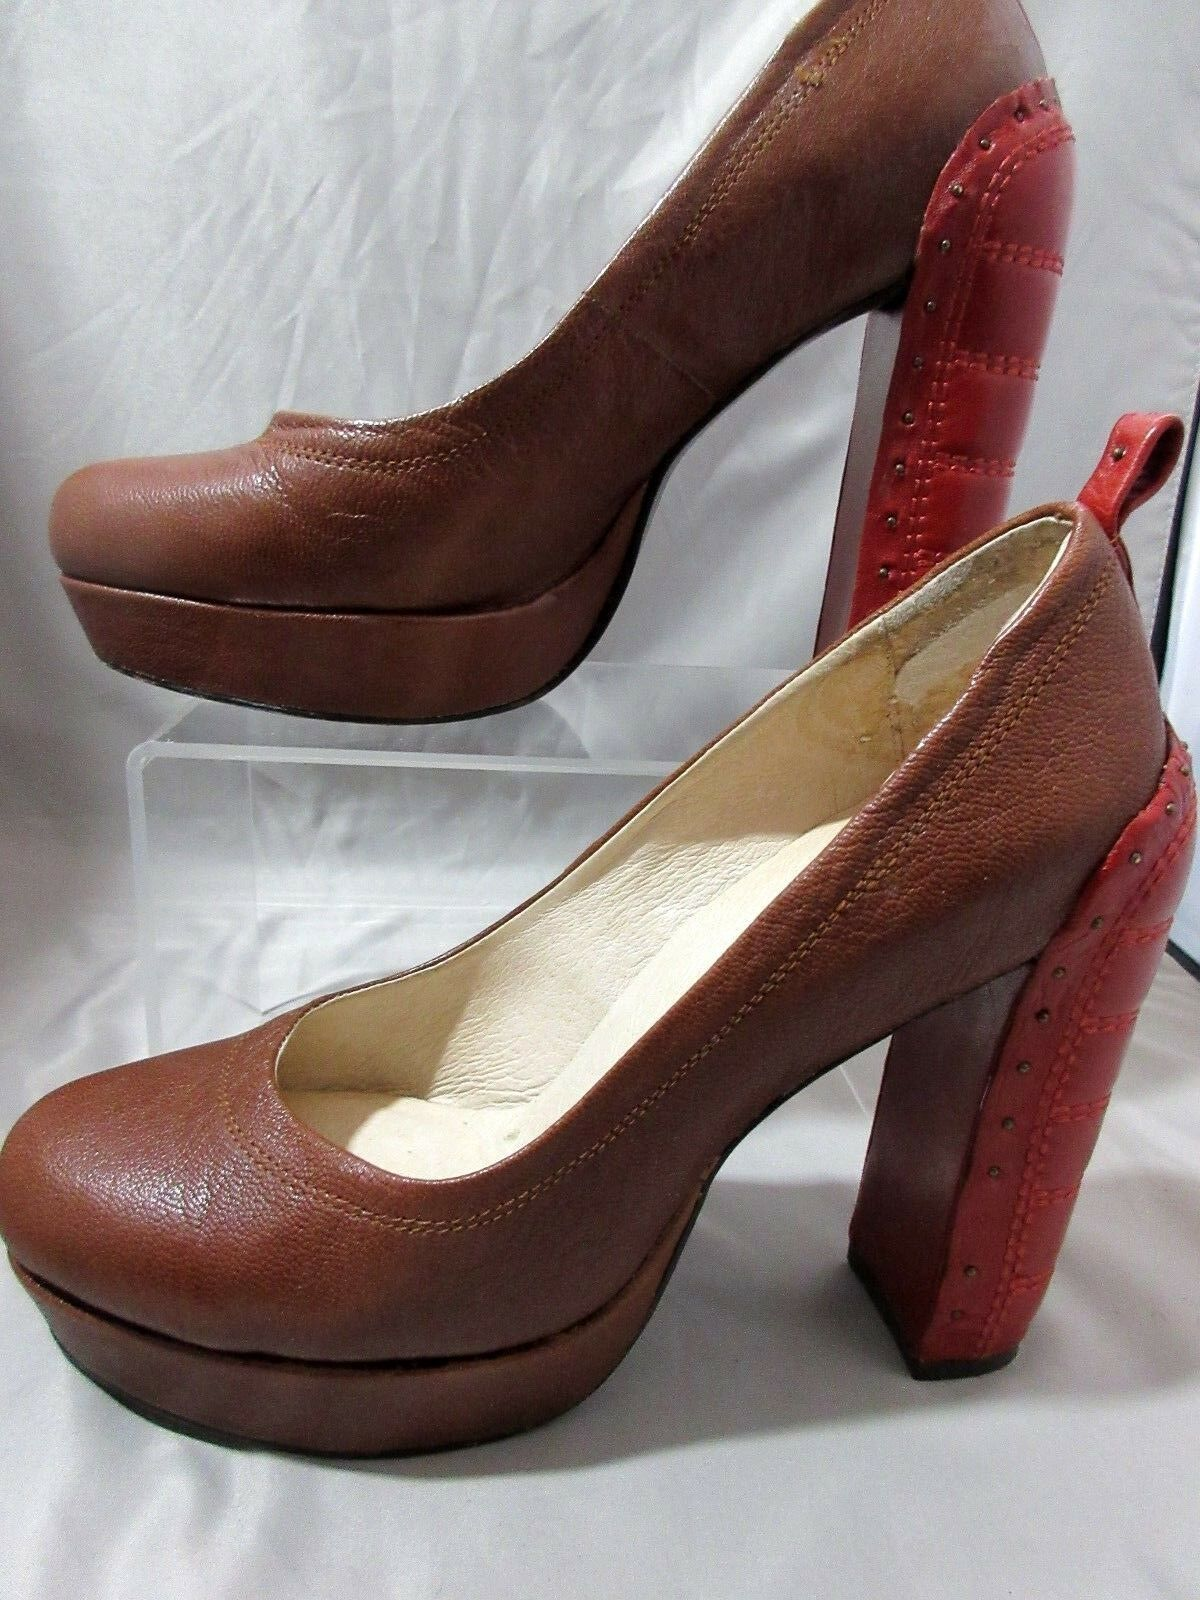 Faryl Robin Women's Platform shoes Brown Red Leather Sole Embossed Heels 6.5